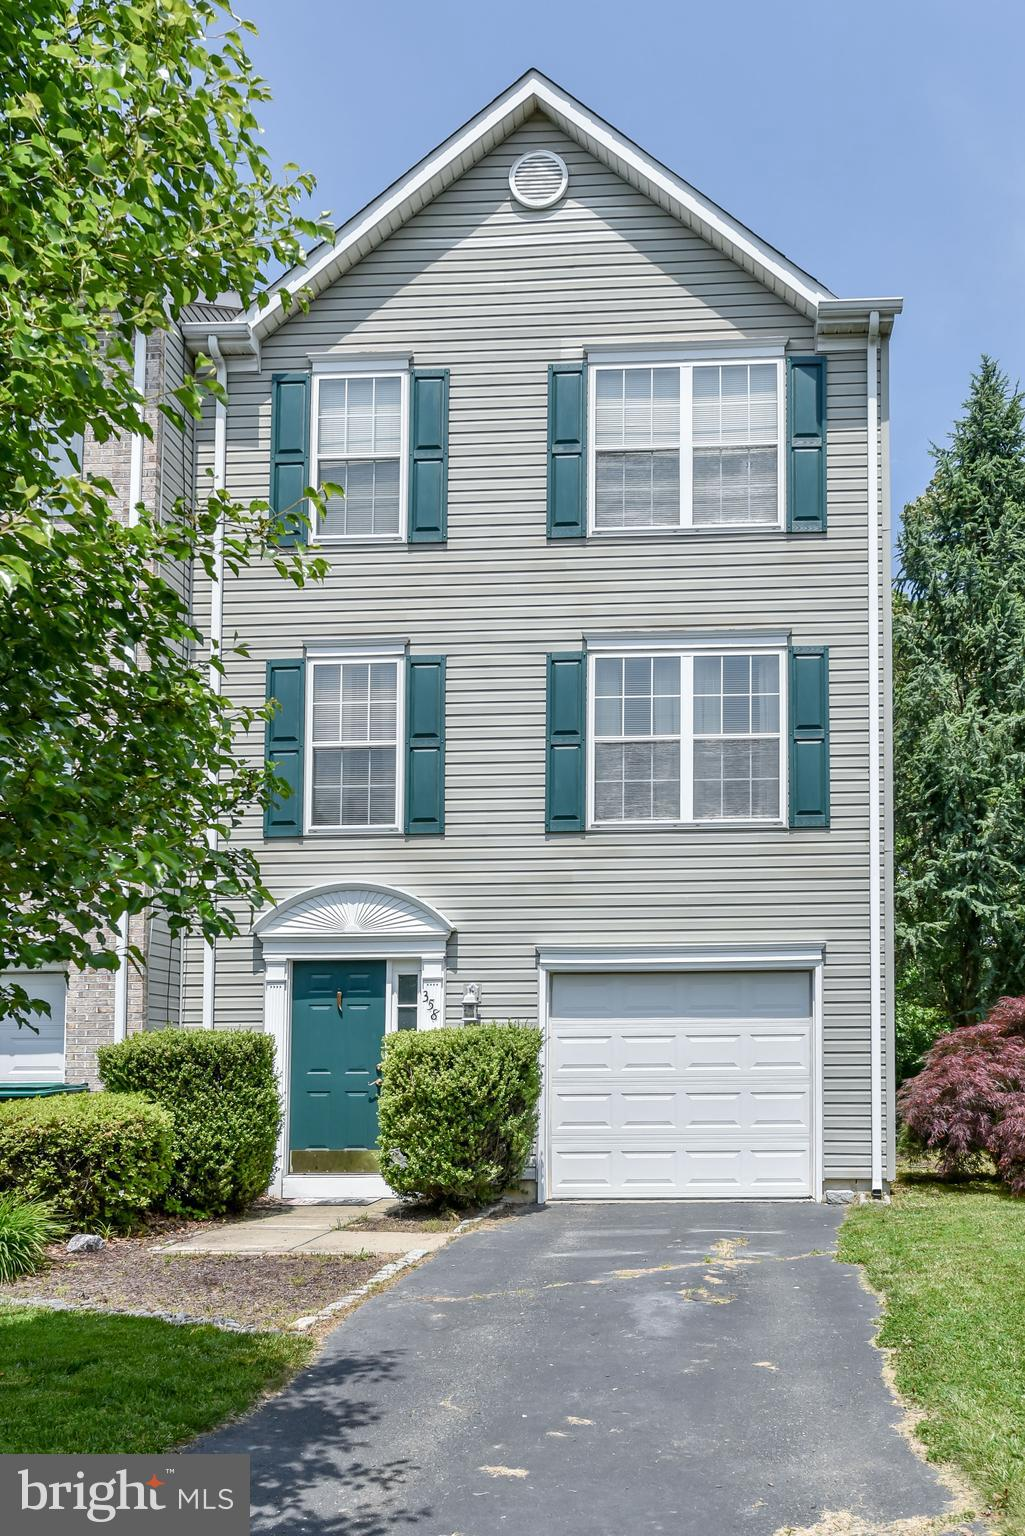 THIS END UNIT TOWNHOUSE HAS A PRIVATE LOT BACKING TO THE WOODS.  GRANITE AND TILE IN KITCHEN WITH SLIDER LEADING TO DECK WITH BAY WINDOW IN BREAKFAST AREA.  PLENTY OF CLOSET SPACE AND STORAGE.  GAS FIREPLACE IN LIVING ROOM AND ONE CAR GARAGE.  MAIN LEVEL WITH LAUNDRY AREA AND FAMILY ROOM WITH SLIDER TO LOWER PATIO AREA.